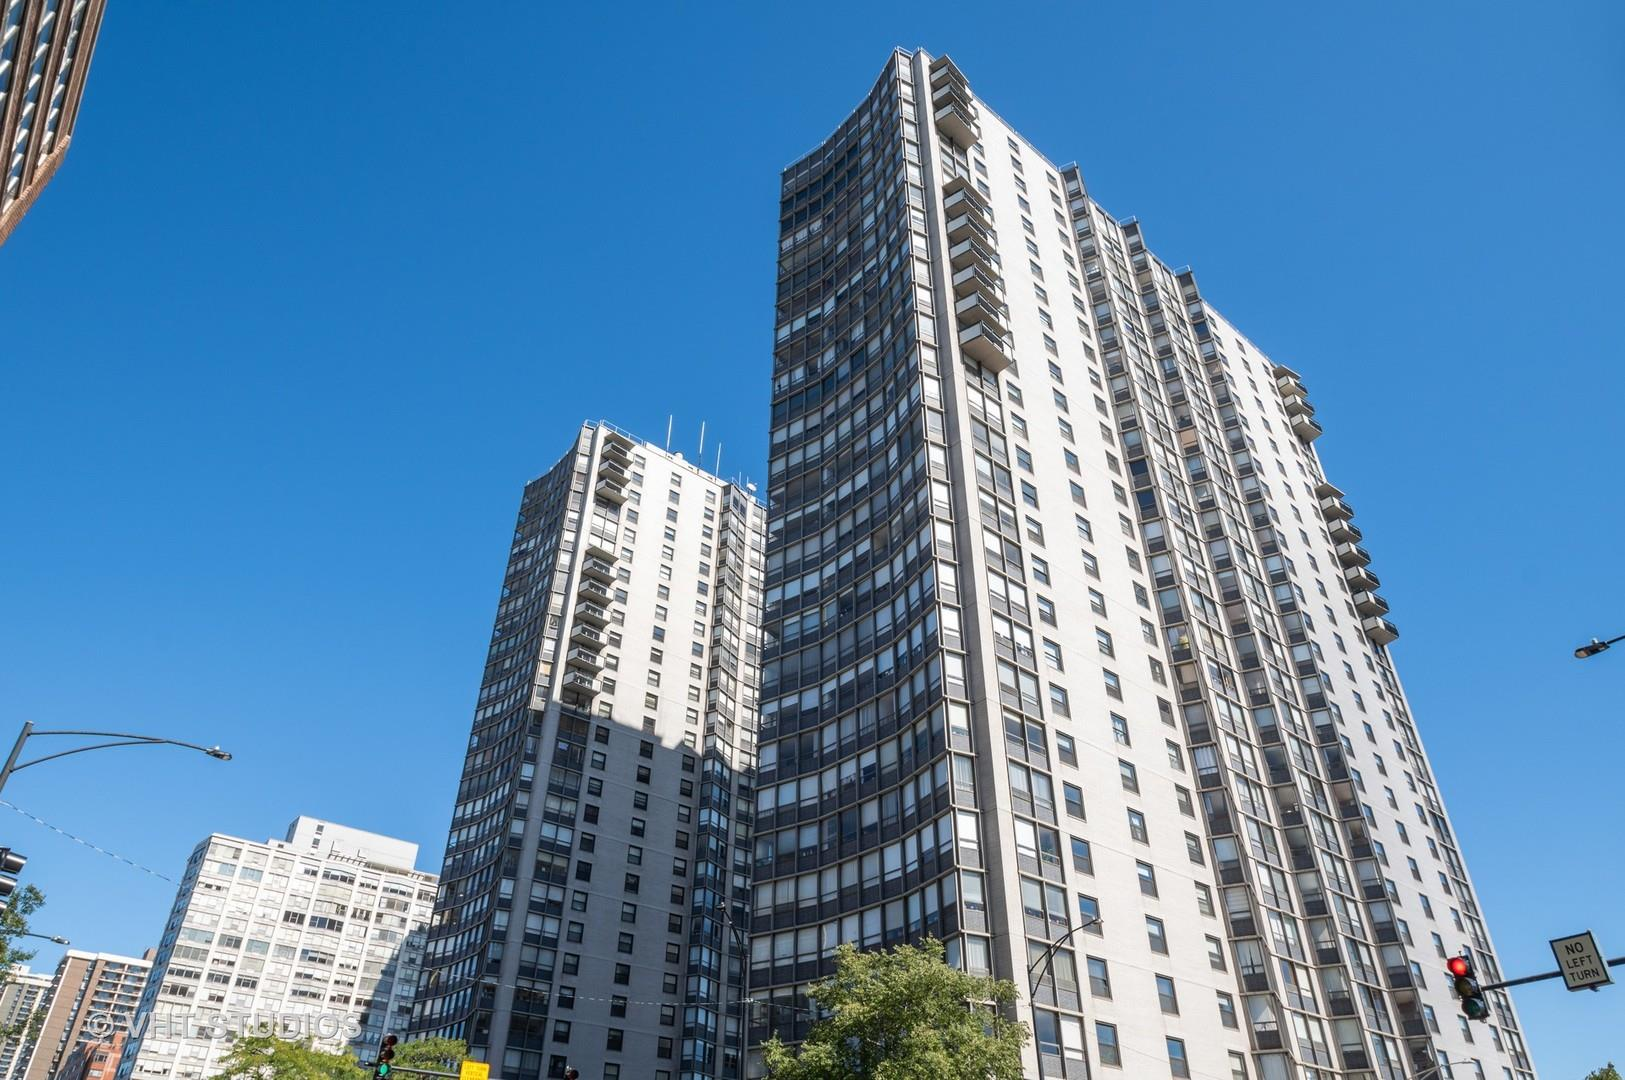 5701 N SHERIDAN Road #21Q, Chicago, IL 60660 - #: 10820208